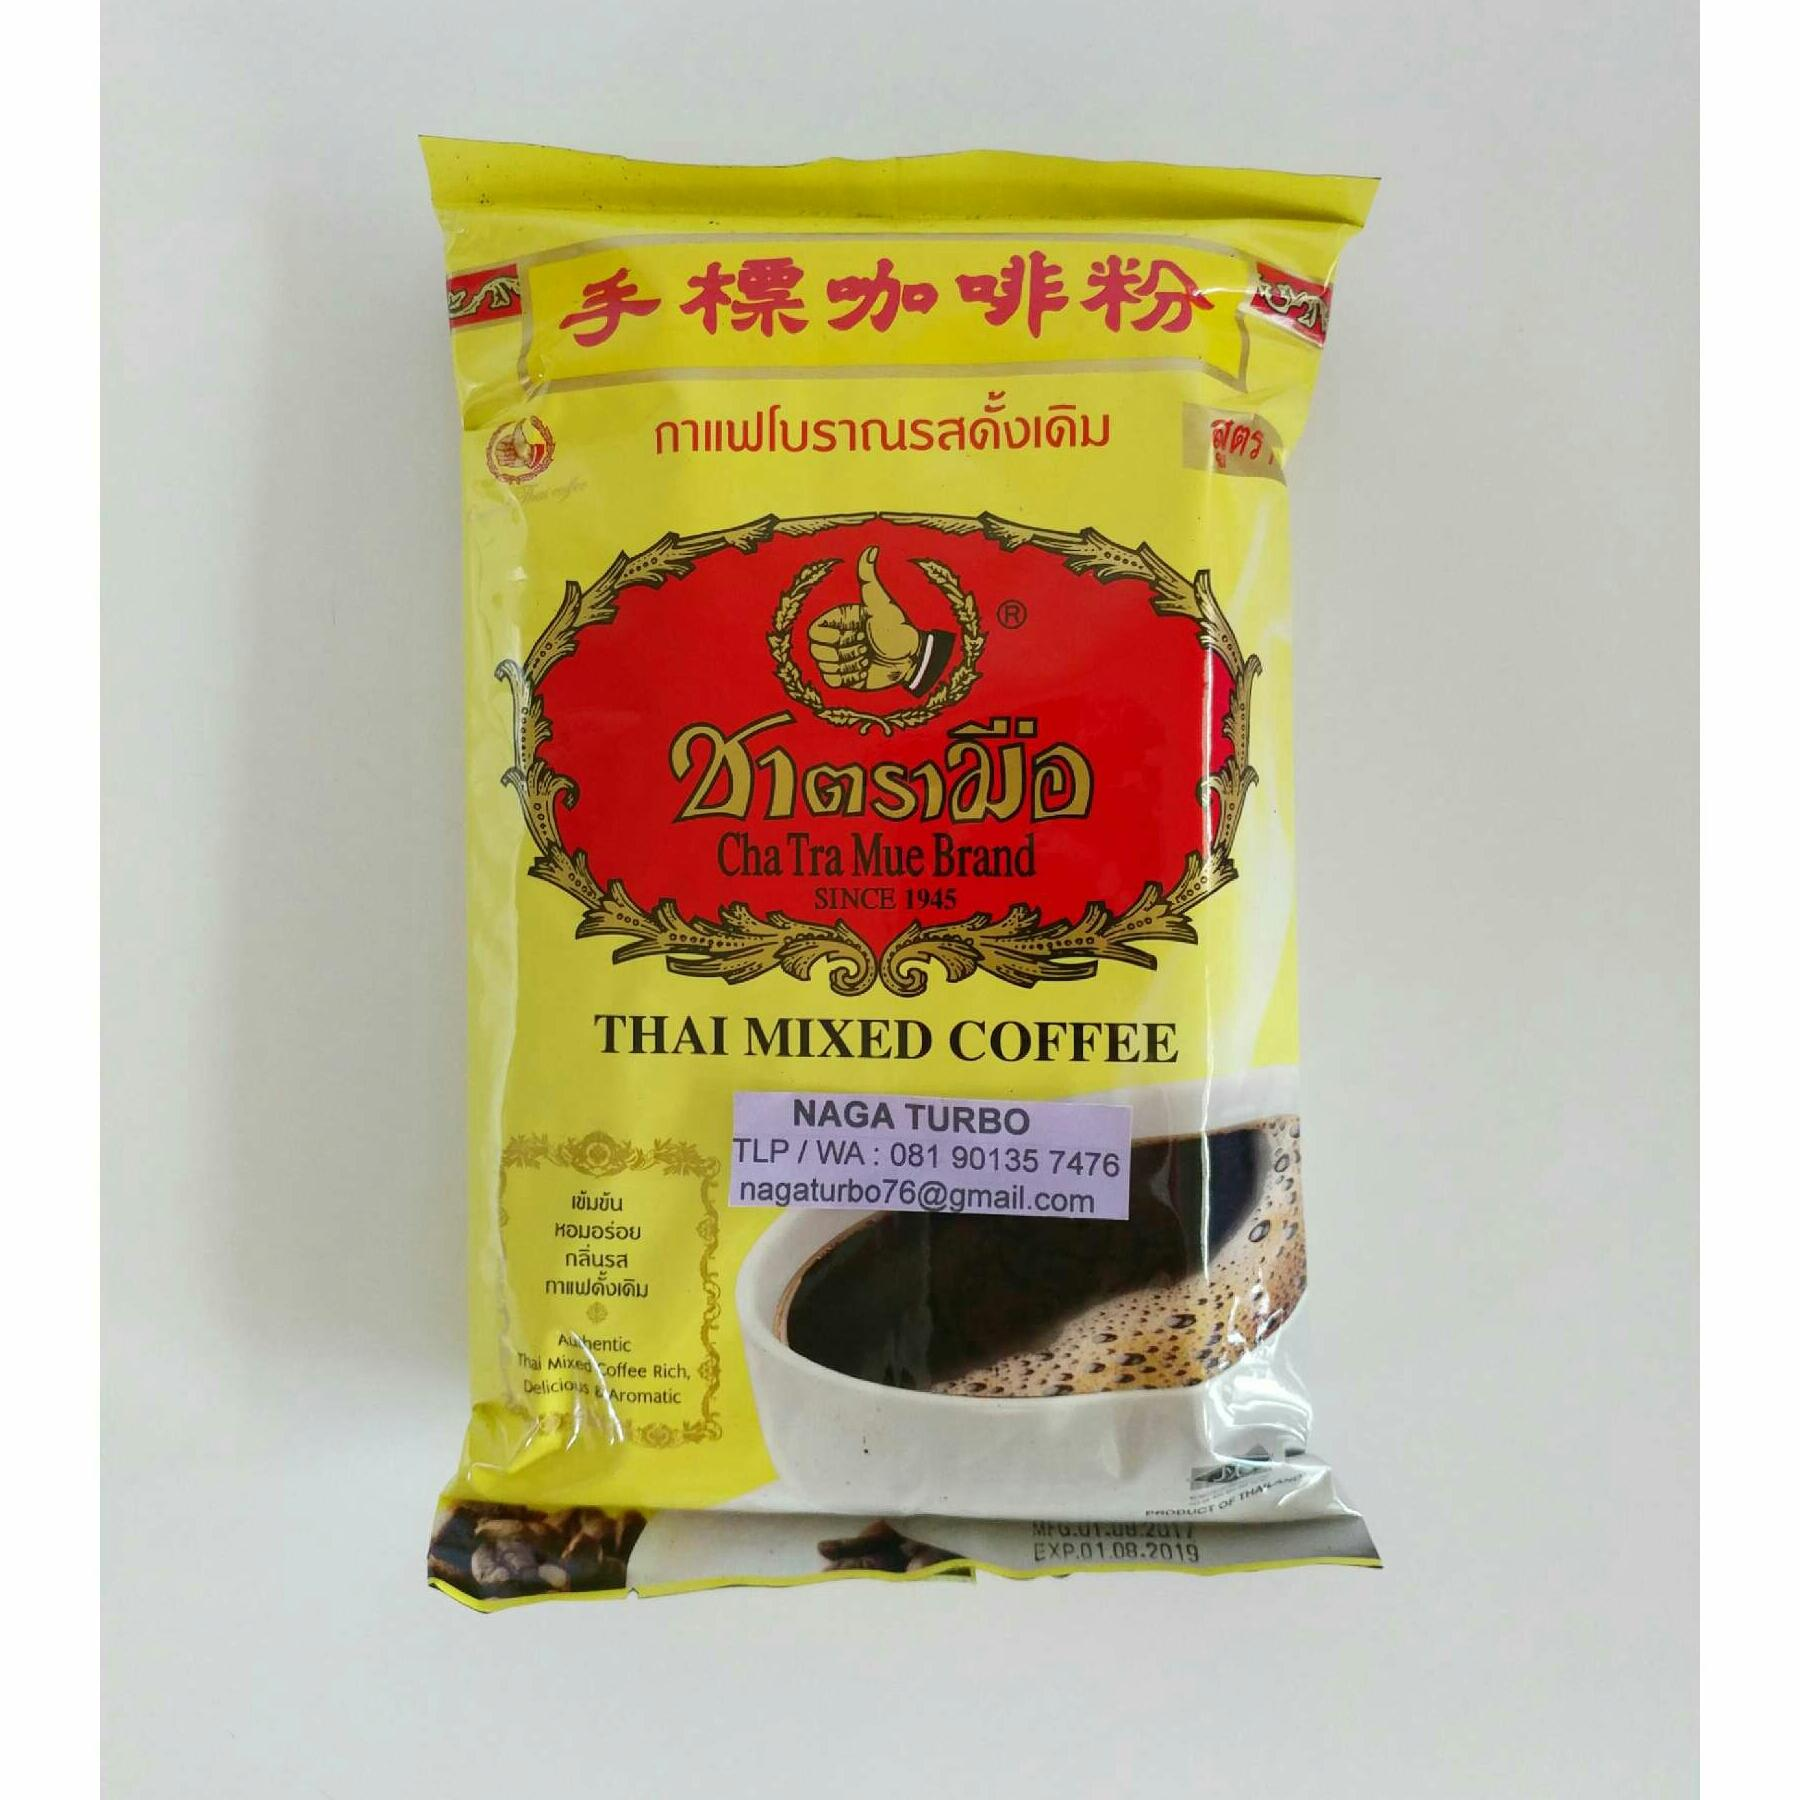 Kelebihan Chatramue Thai Mixed Coffee Terkini Daftar Harga Dan Paket Green Tea Brand Kopi Thailand Number One Original